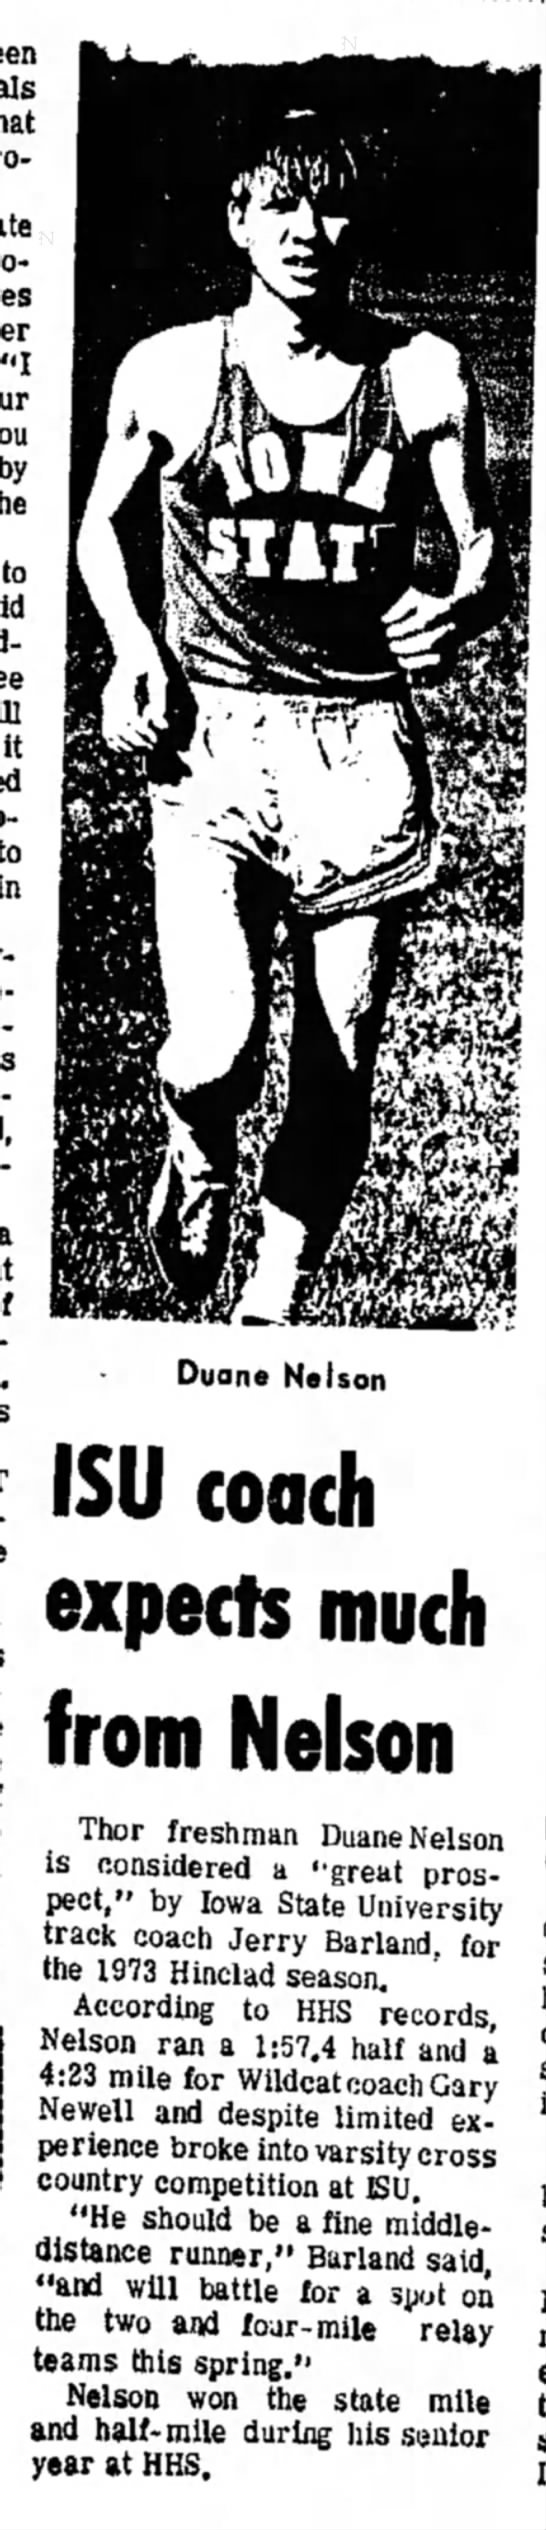 """March 17, 1973 Iowa State article - """"I by to it to Duane Nelson ISU coach expects..."""